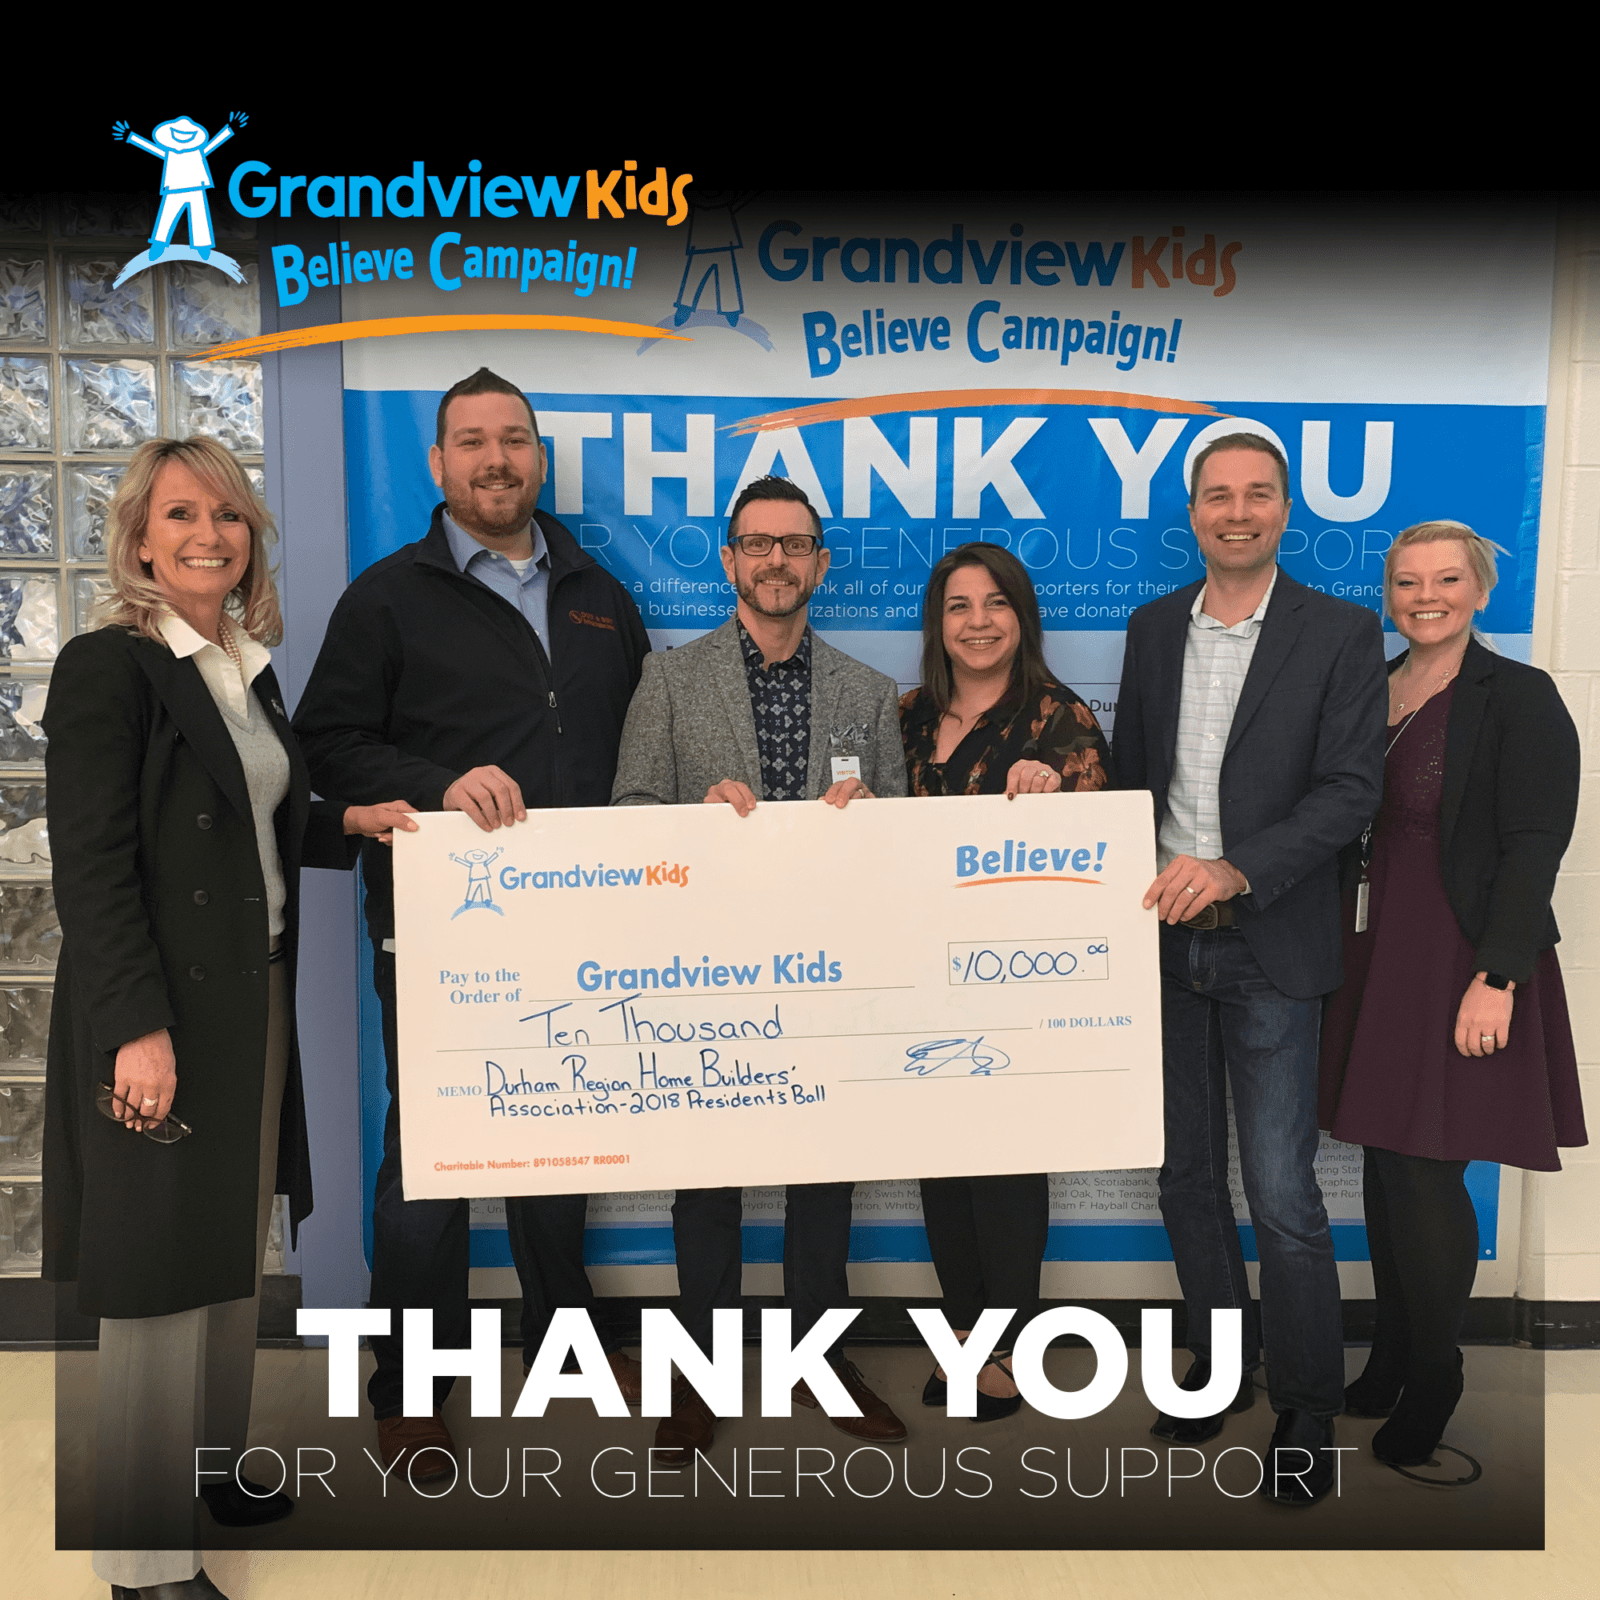 Durham Region Home Builders Association selected Grandview Kids as their charity of choice